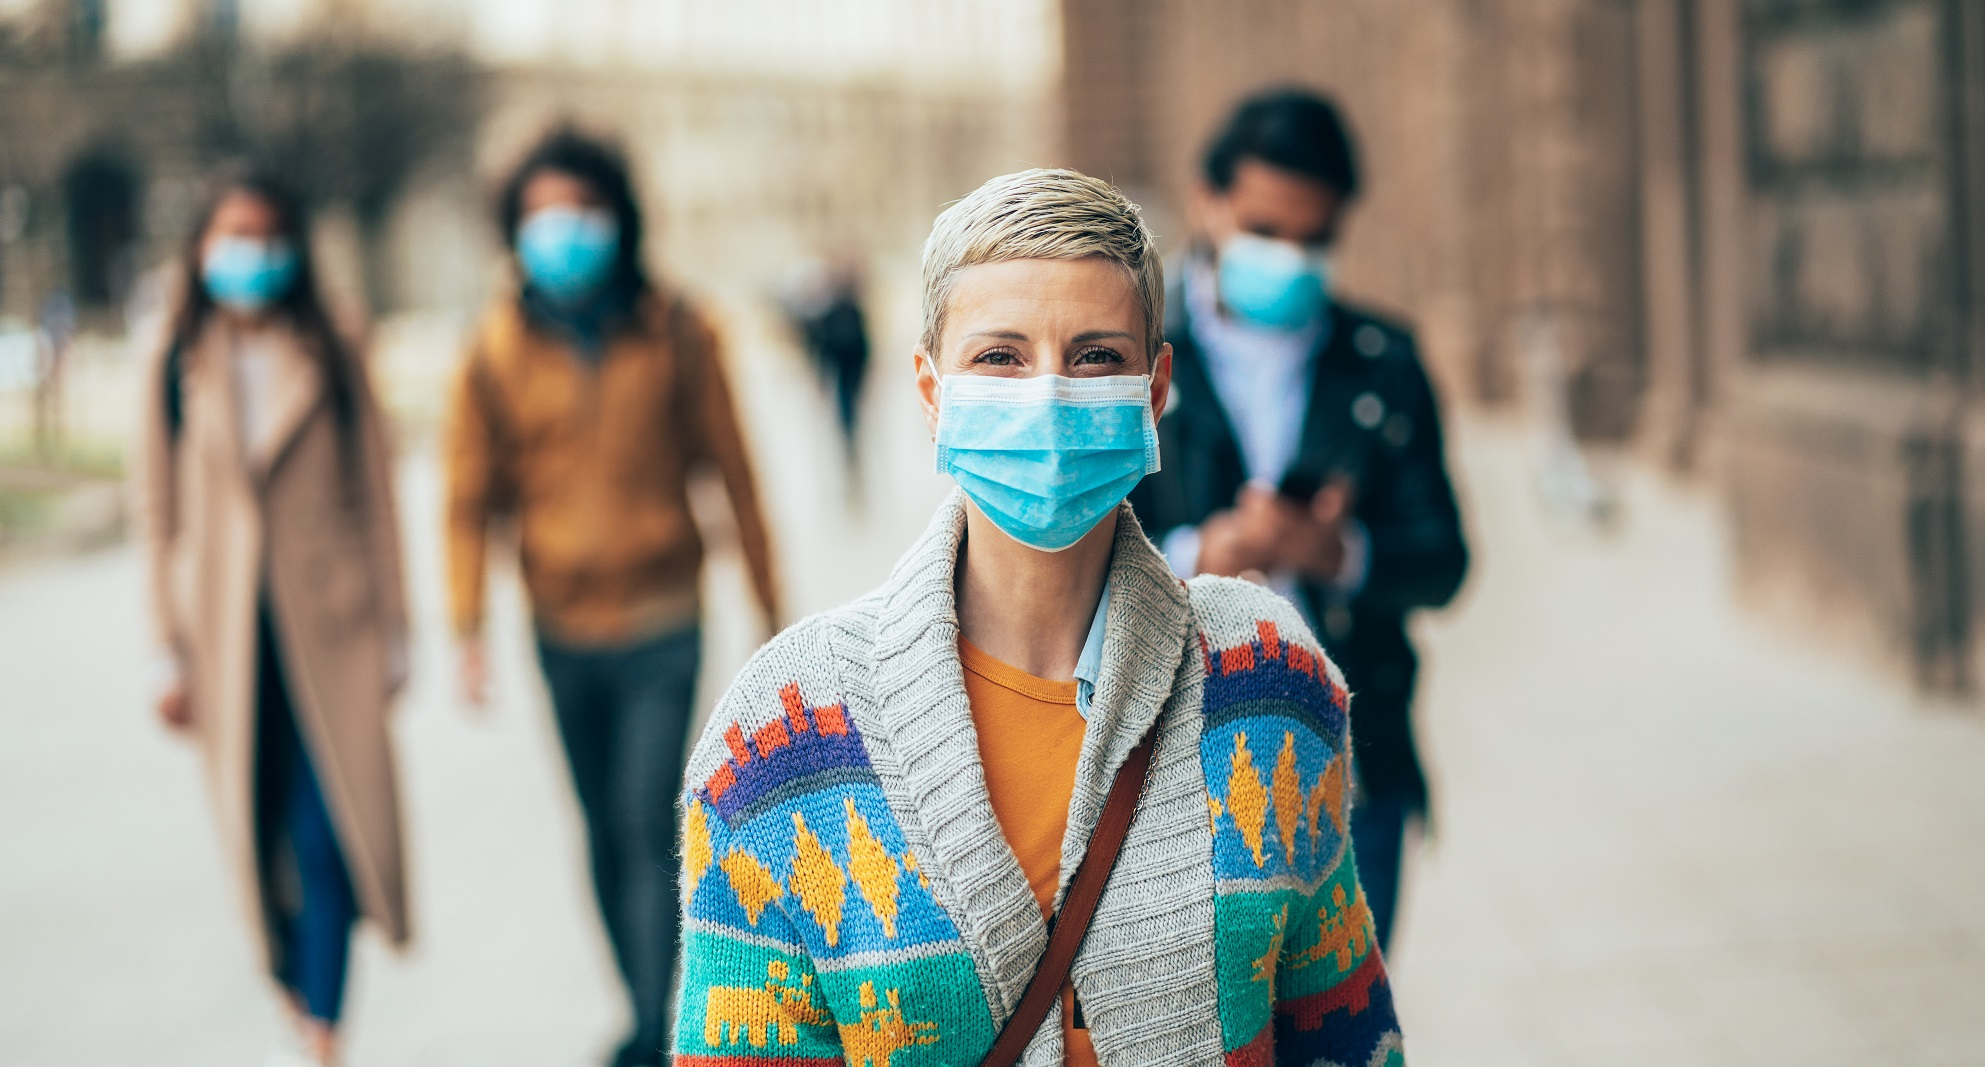 Lady in street with a face mask on